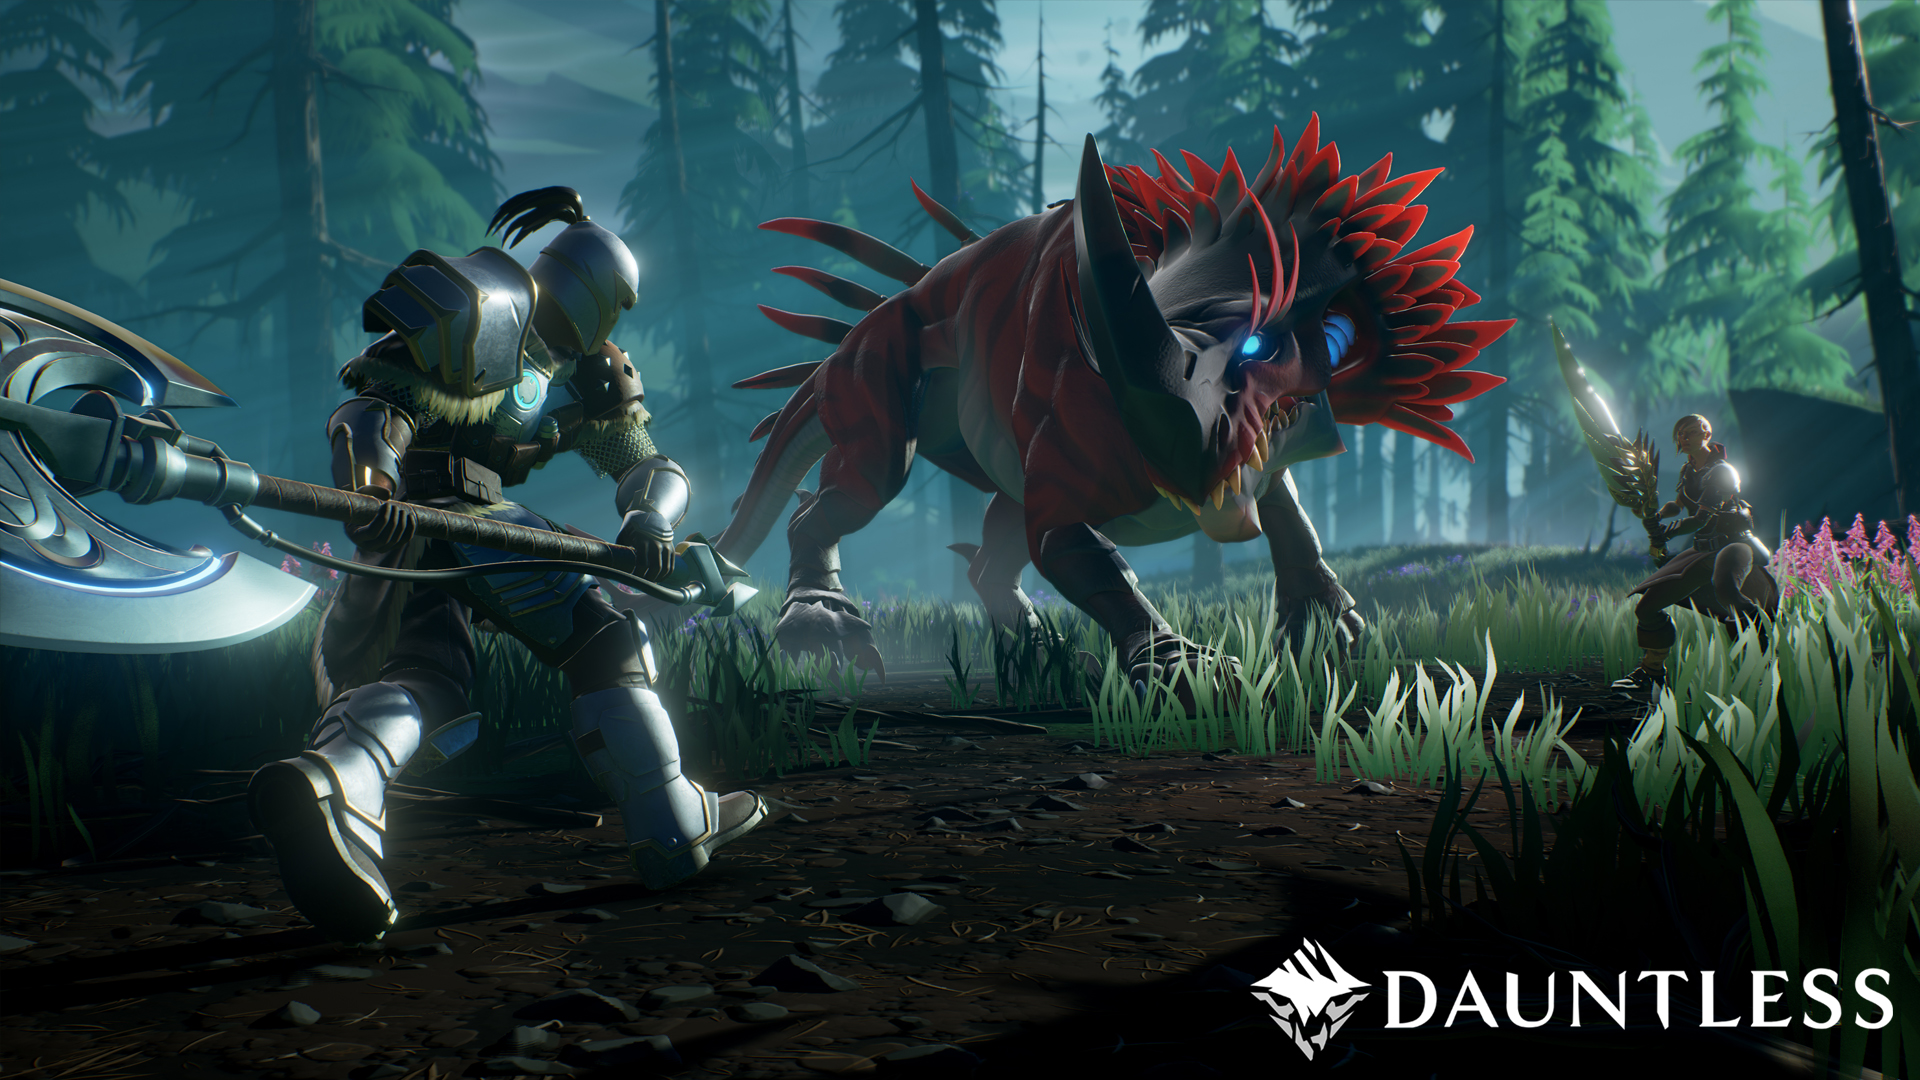 embermane-combat-screenshots-dauntless.jpg